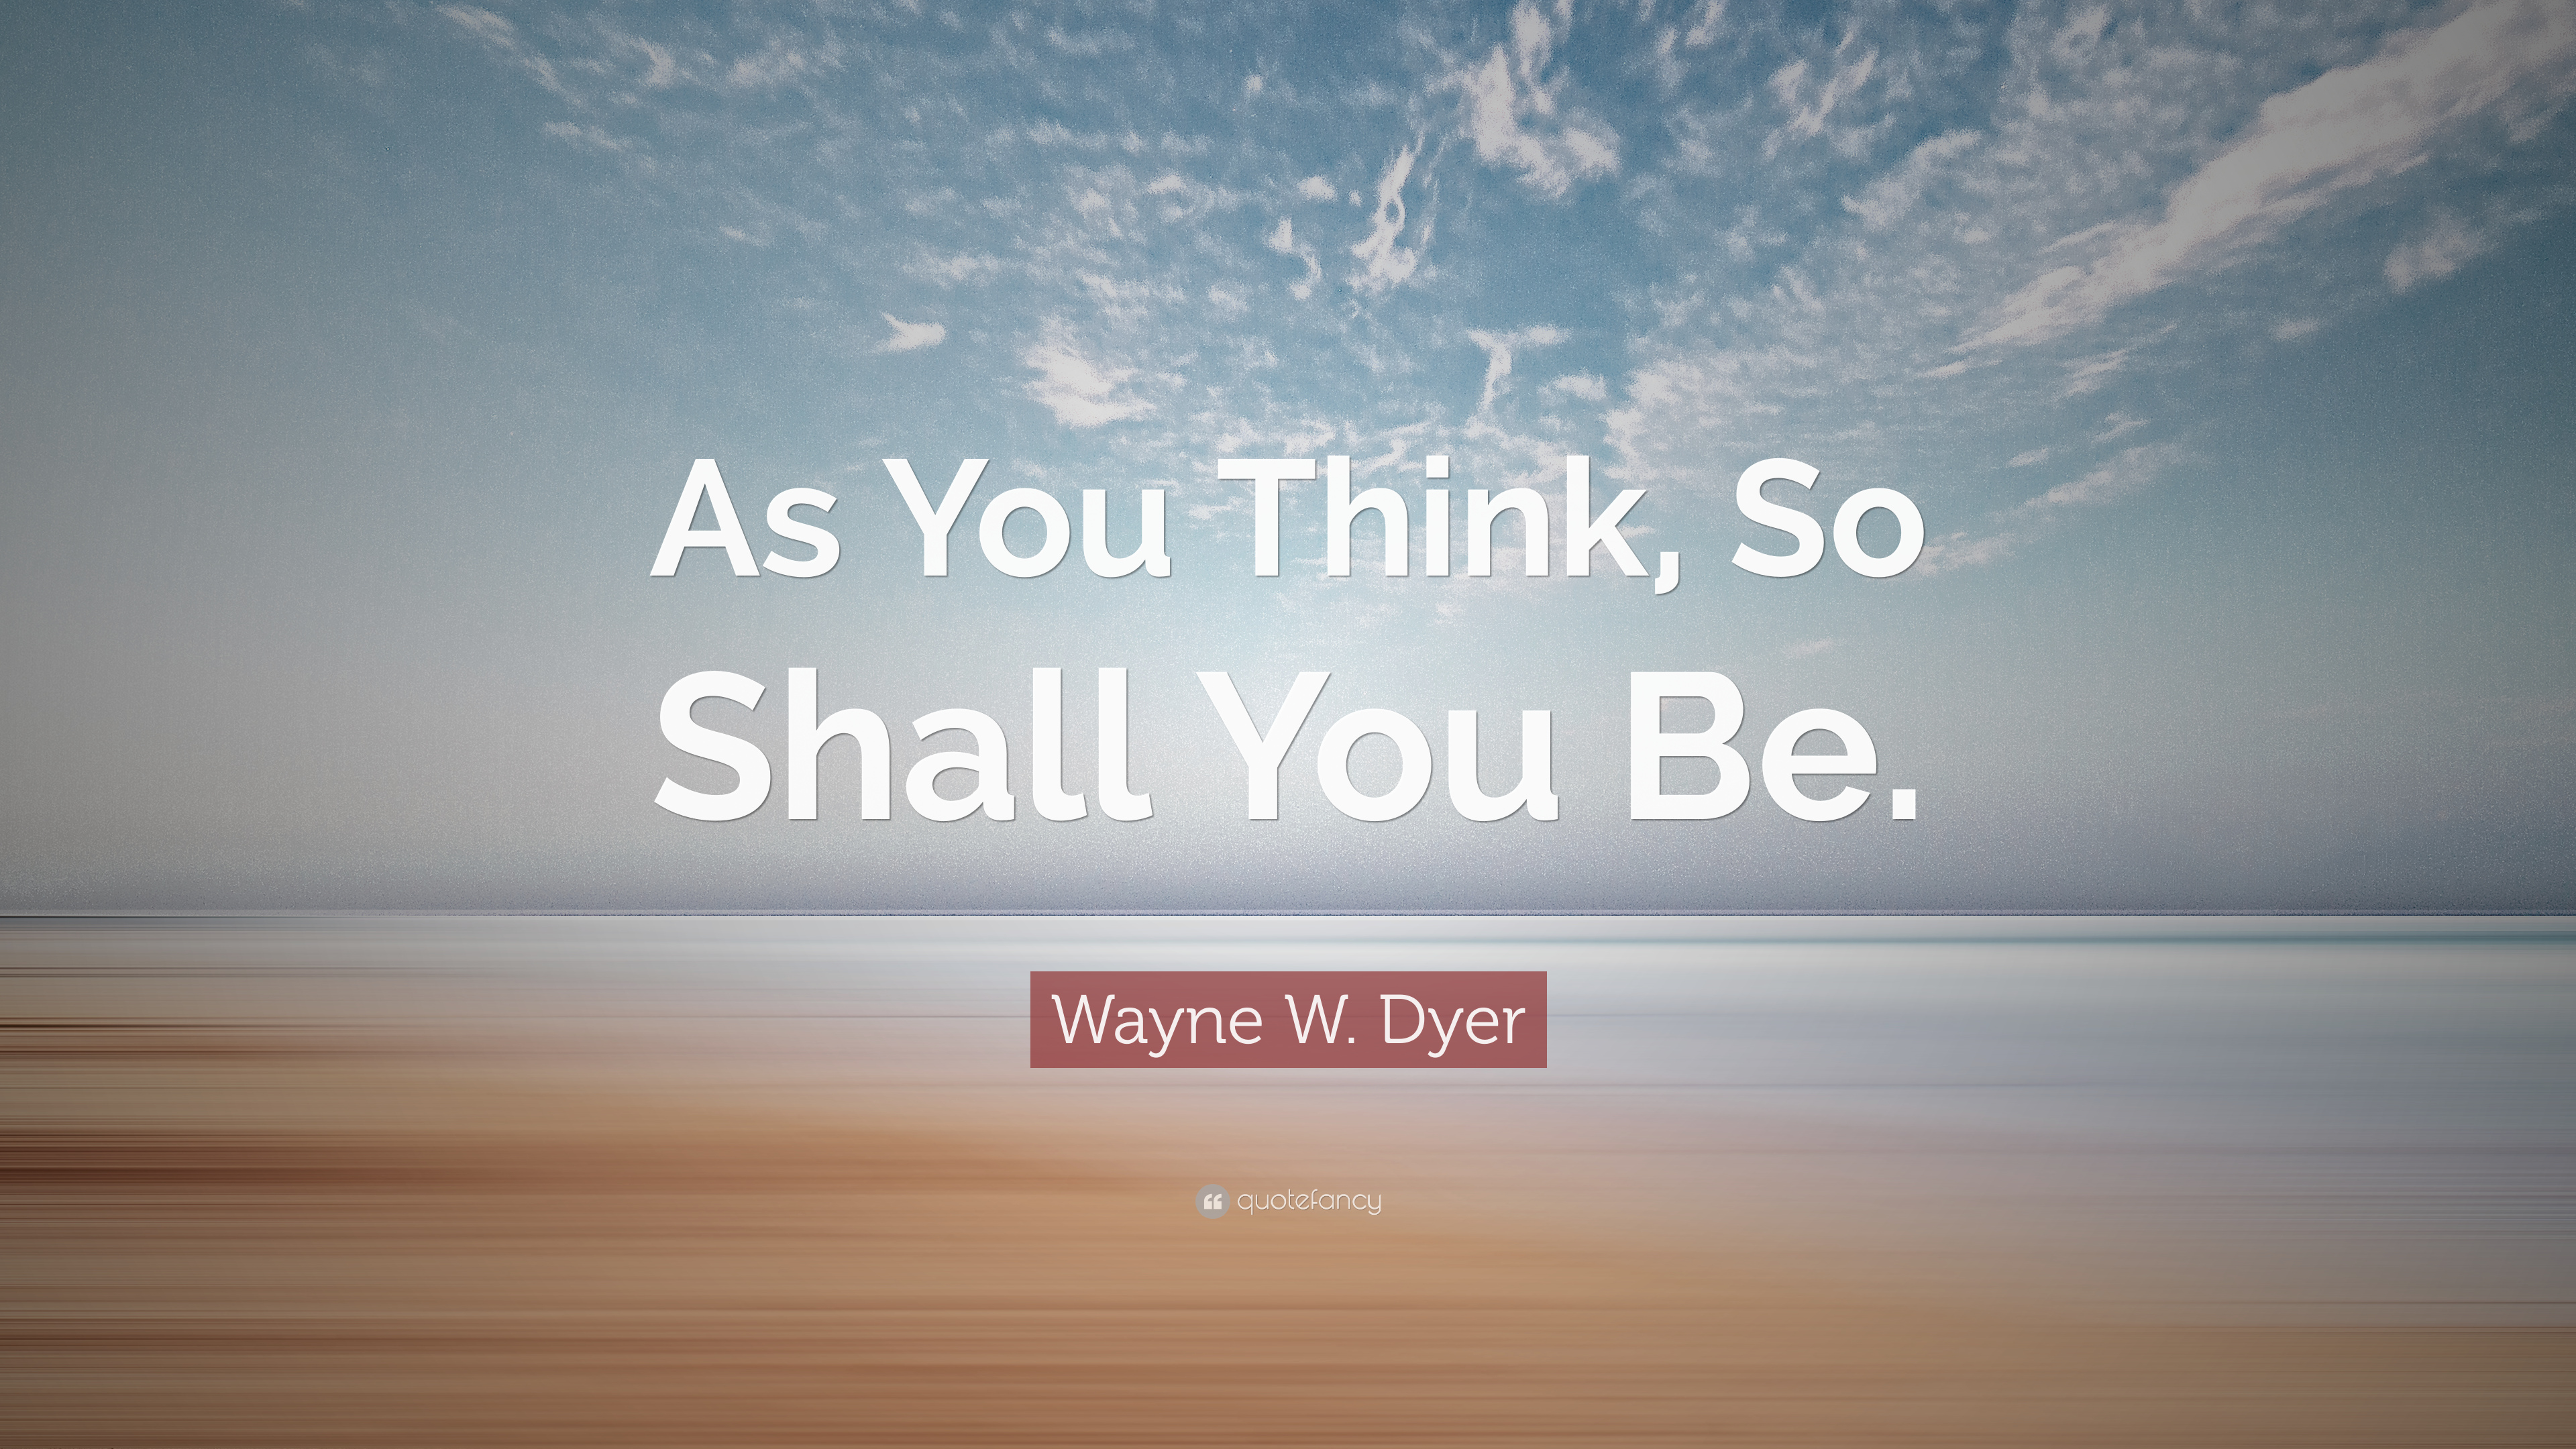 Brian Tracy Quotes Wallpaper Wayne W Dyer Quote As You Think So Shall You Be 12